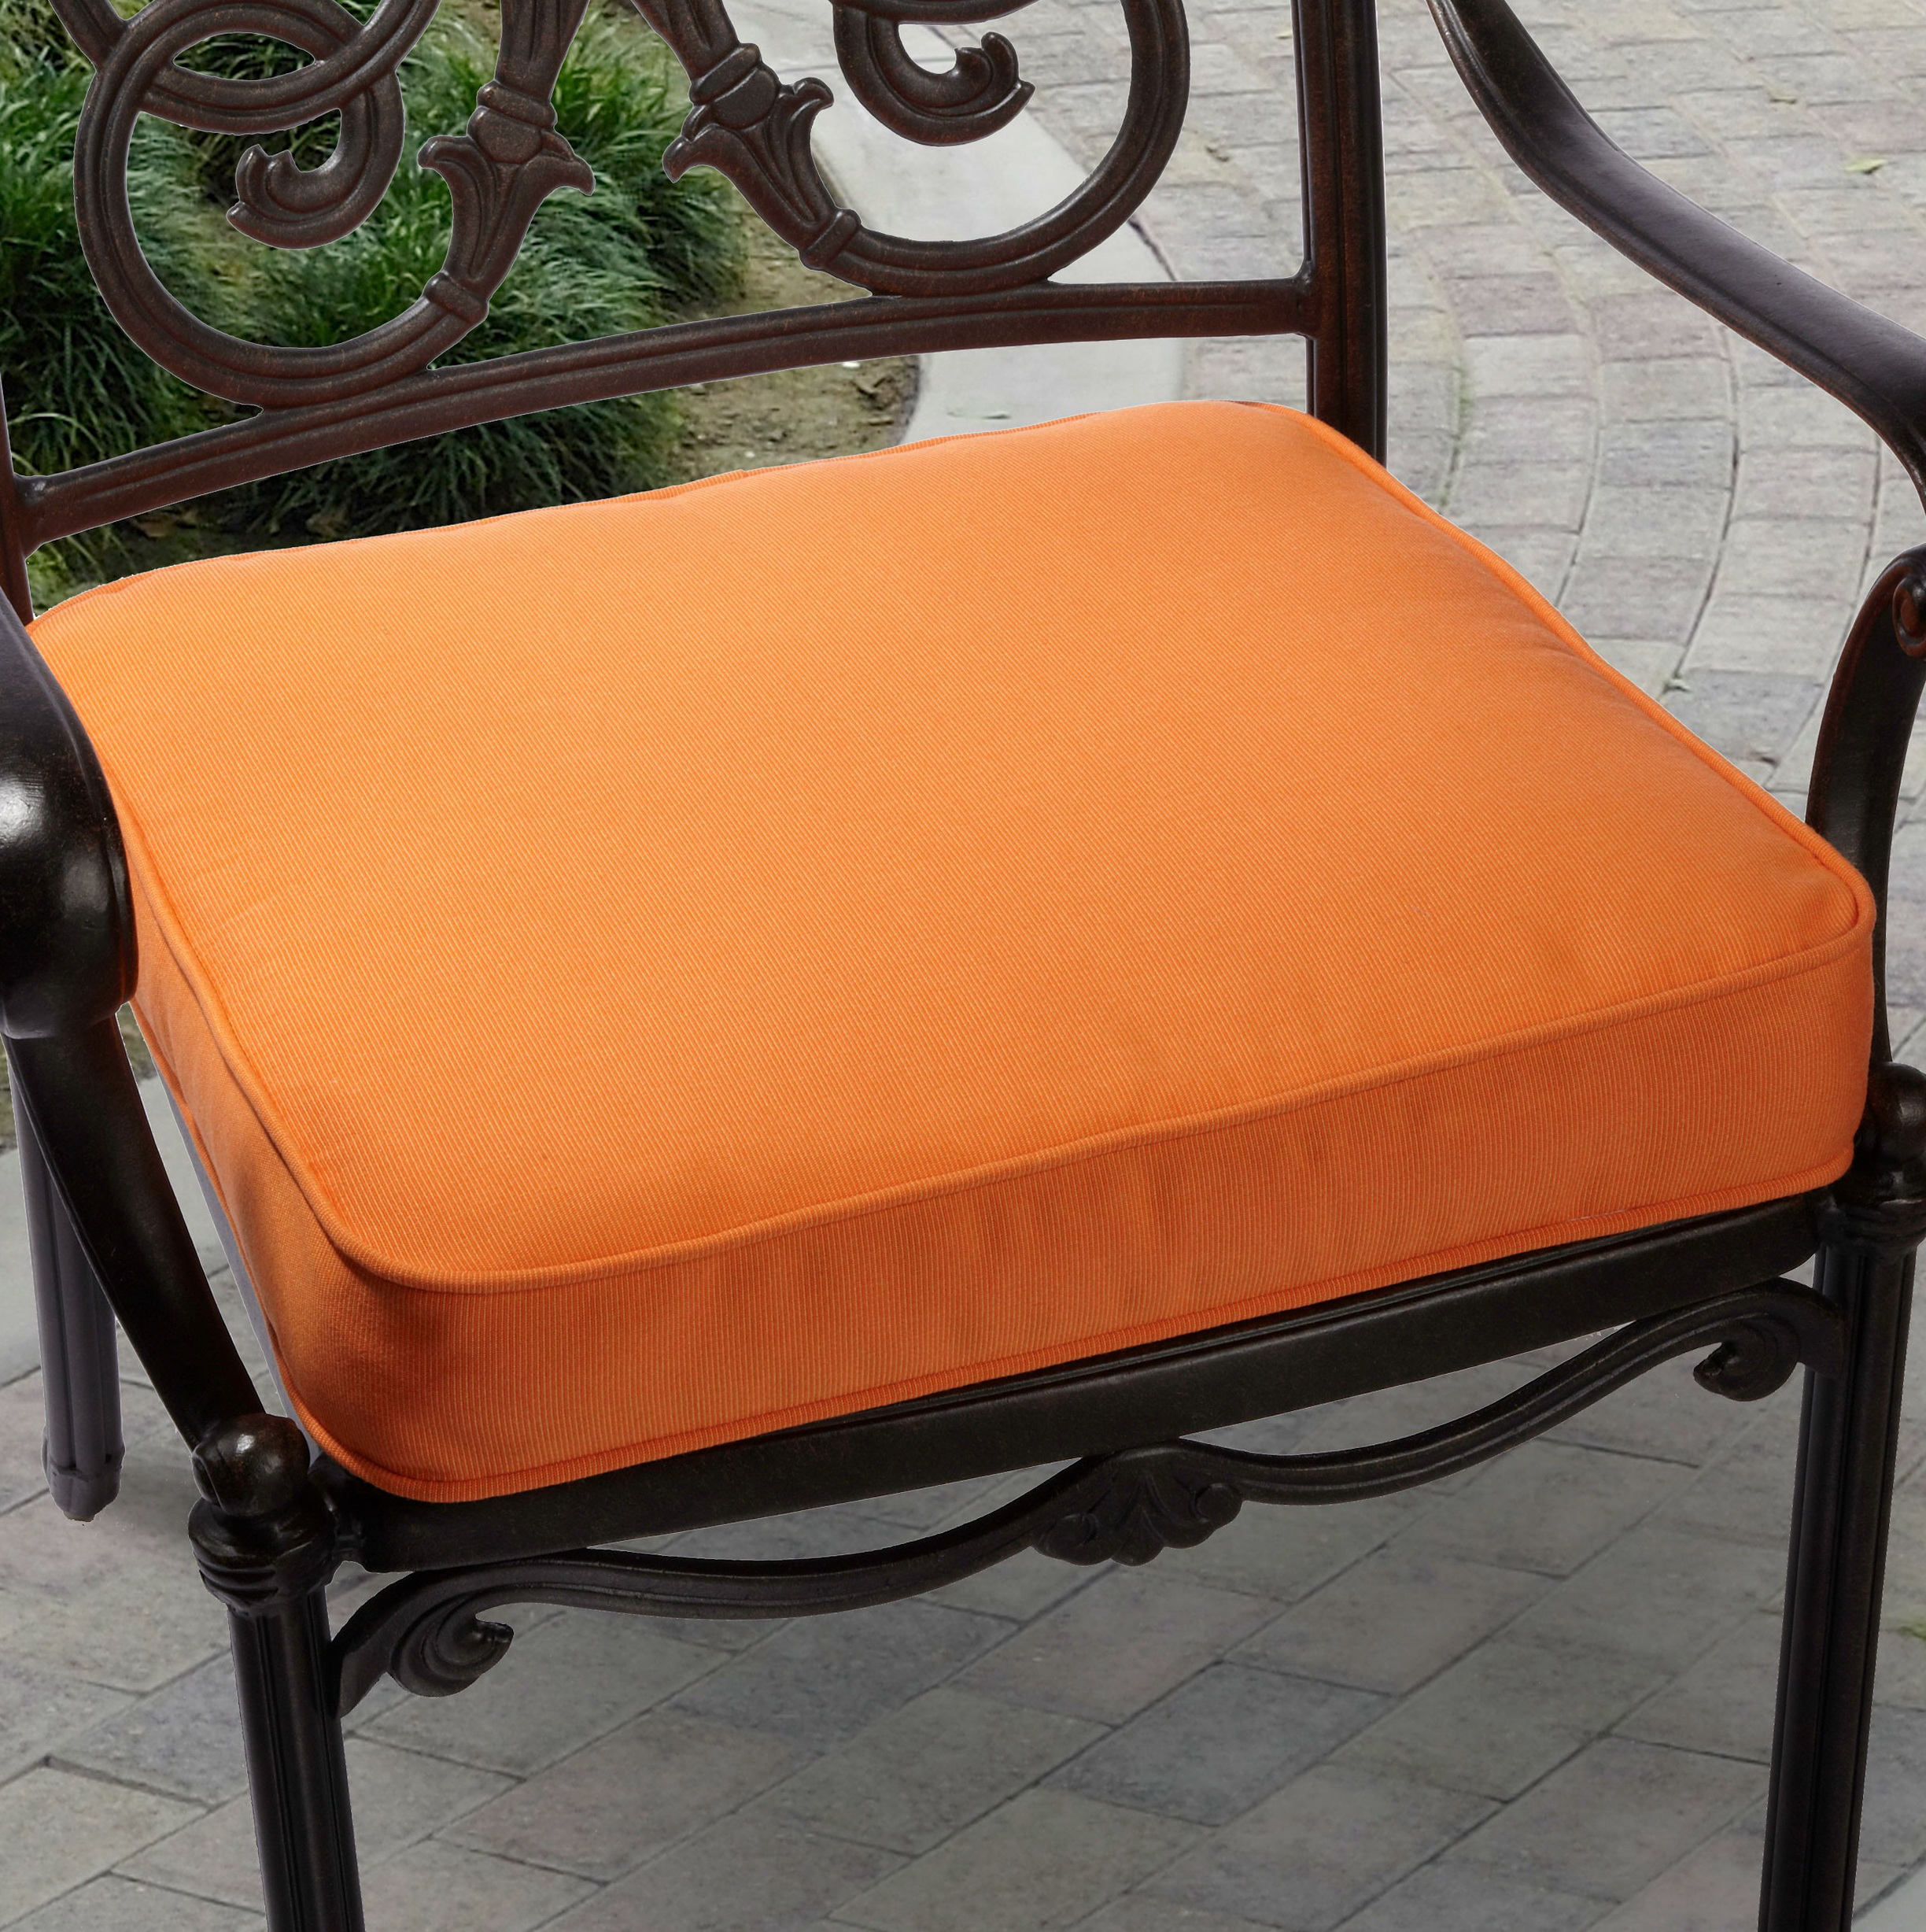 Patio Furniture Cushions Sunbrella Fabric